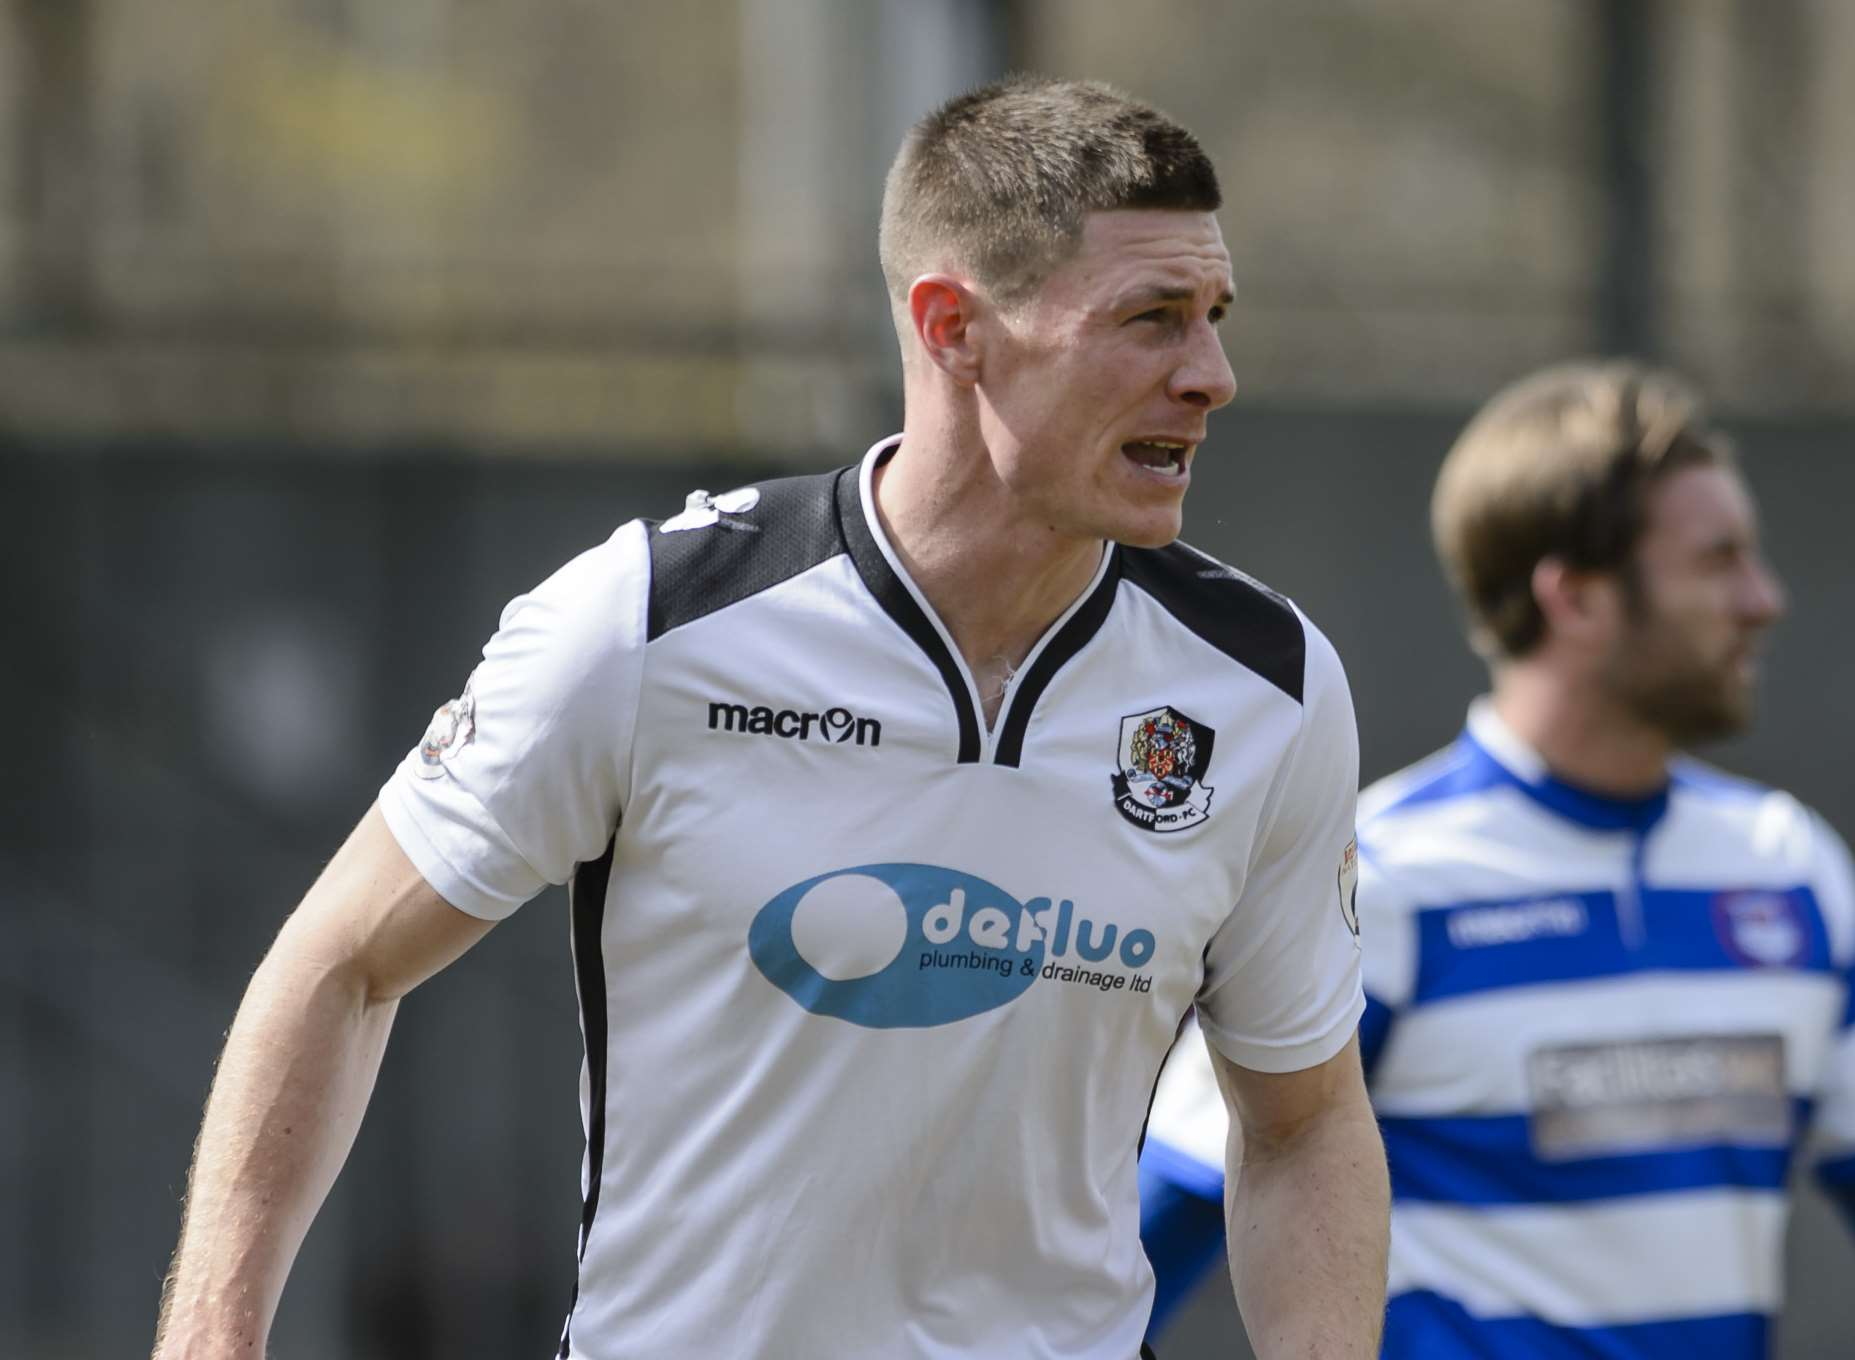 Paul Lorraine has been invited to train with Dartford in pre-season Picture: Andy Payton